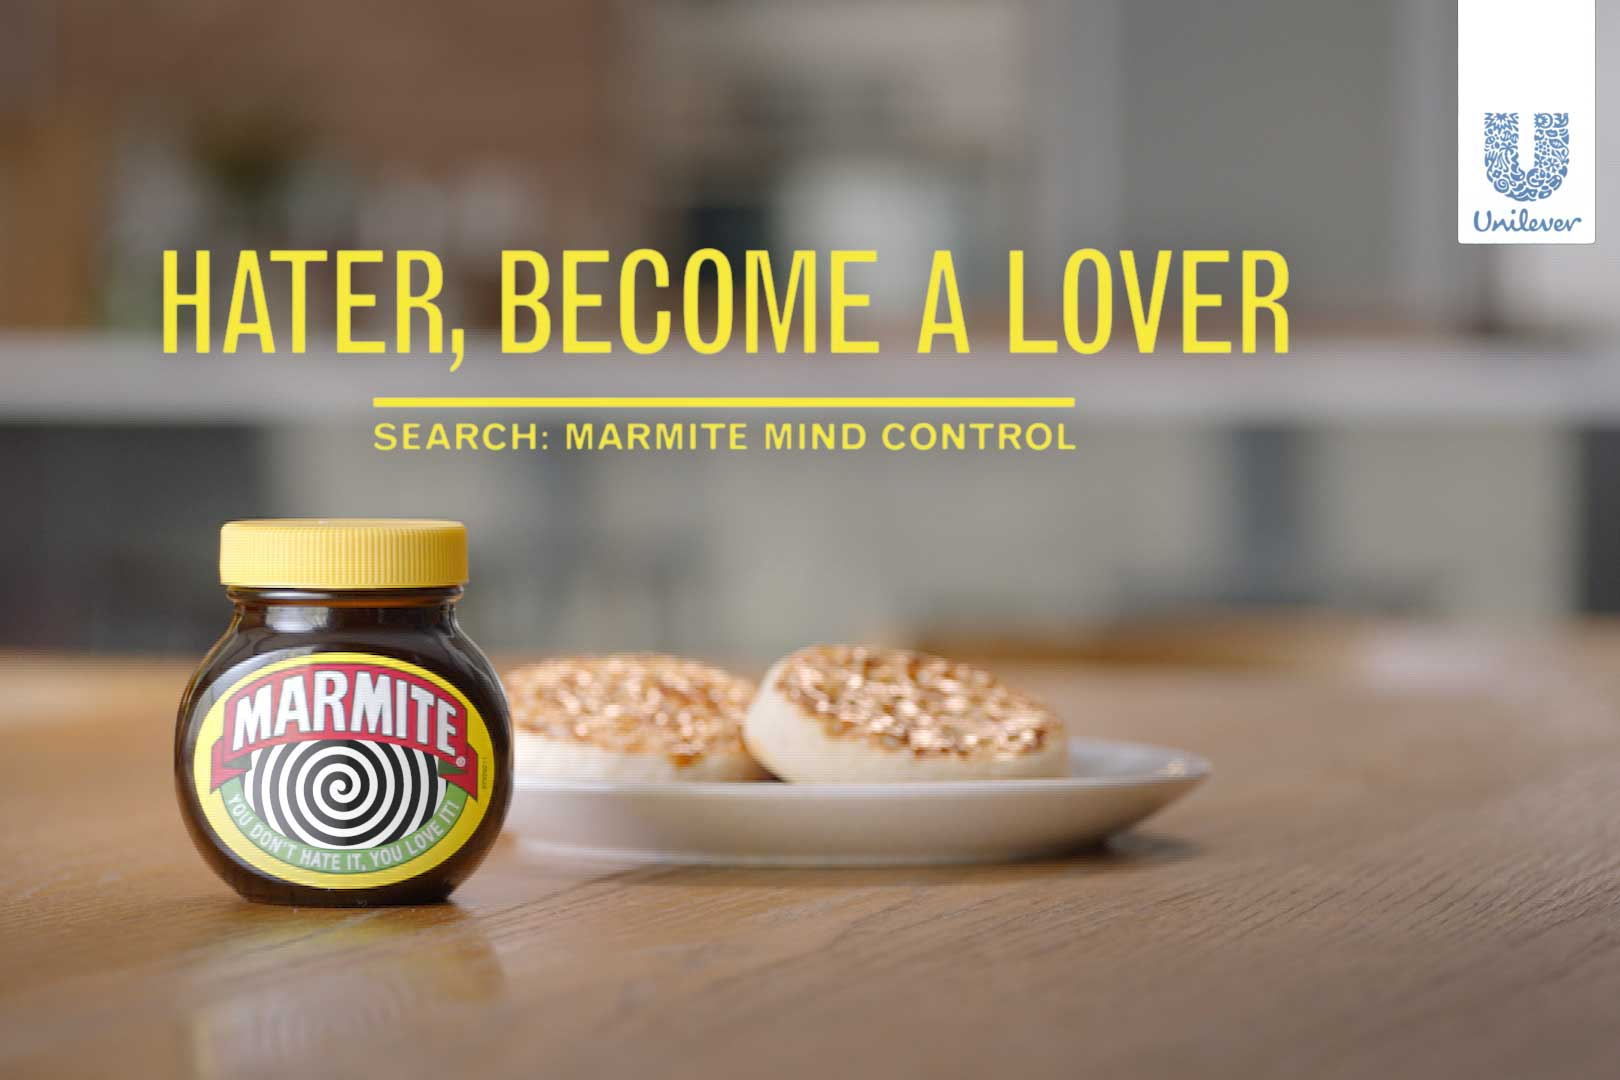 MARMITE IS TRYING TO HYPNOTIZE HATERS INTO LIKING IT